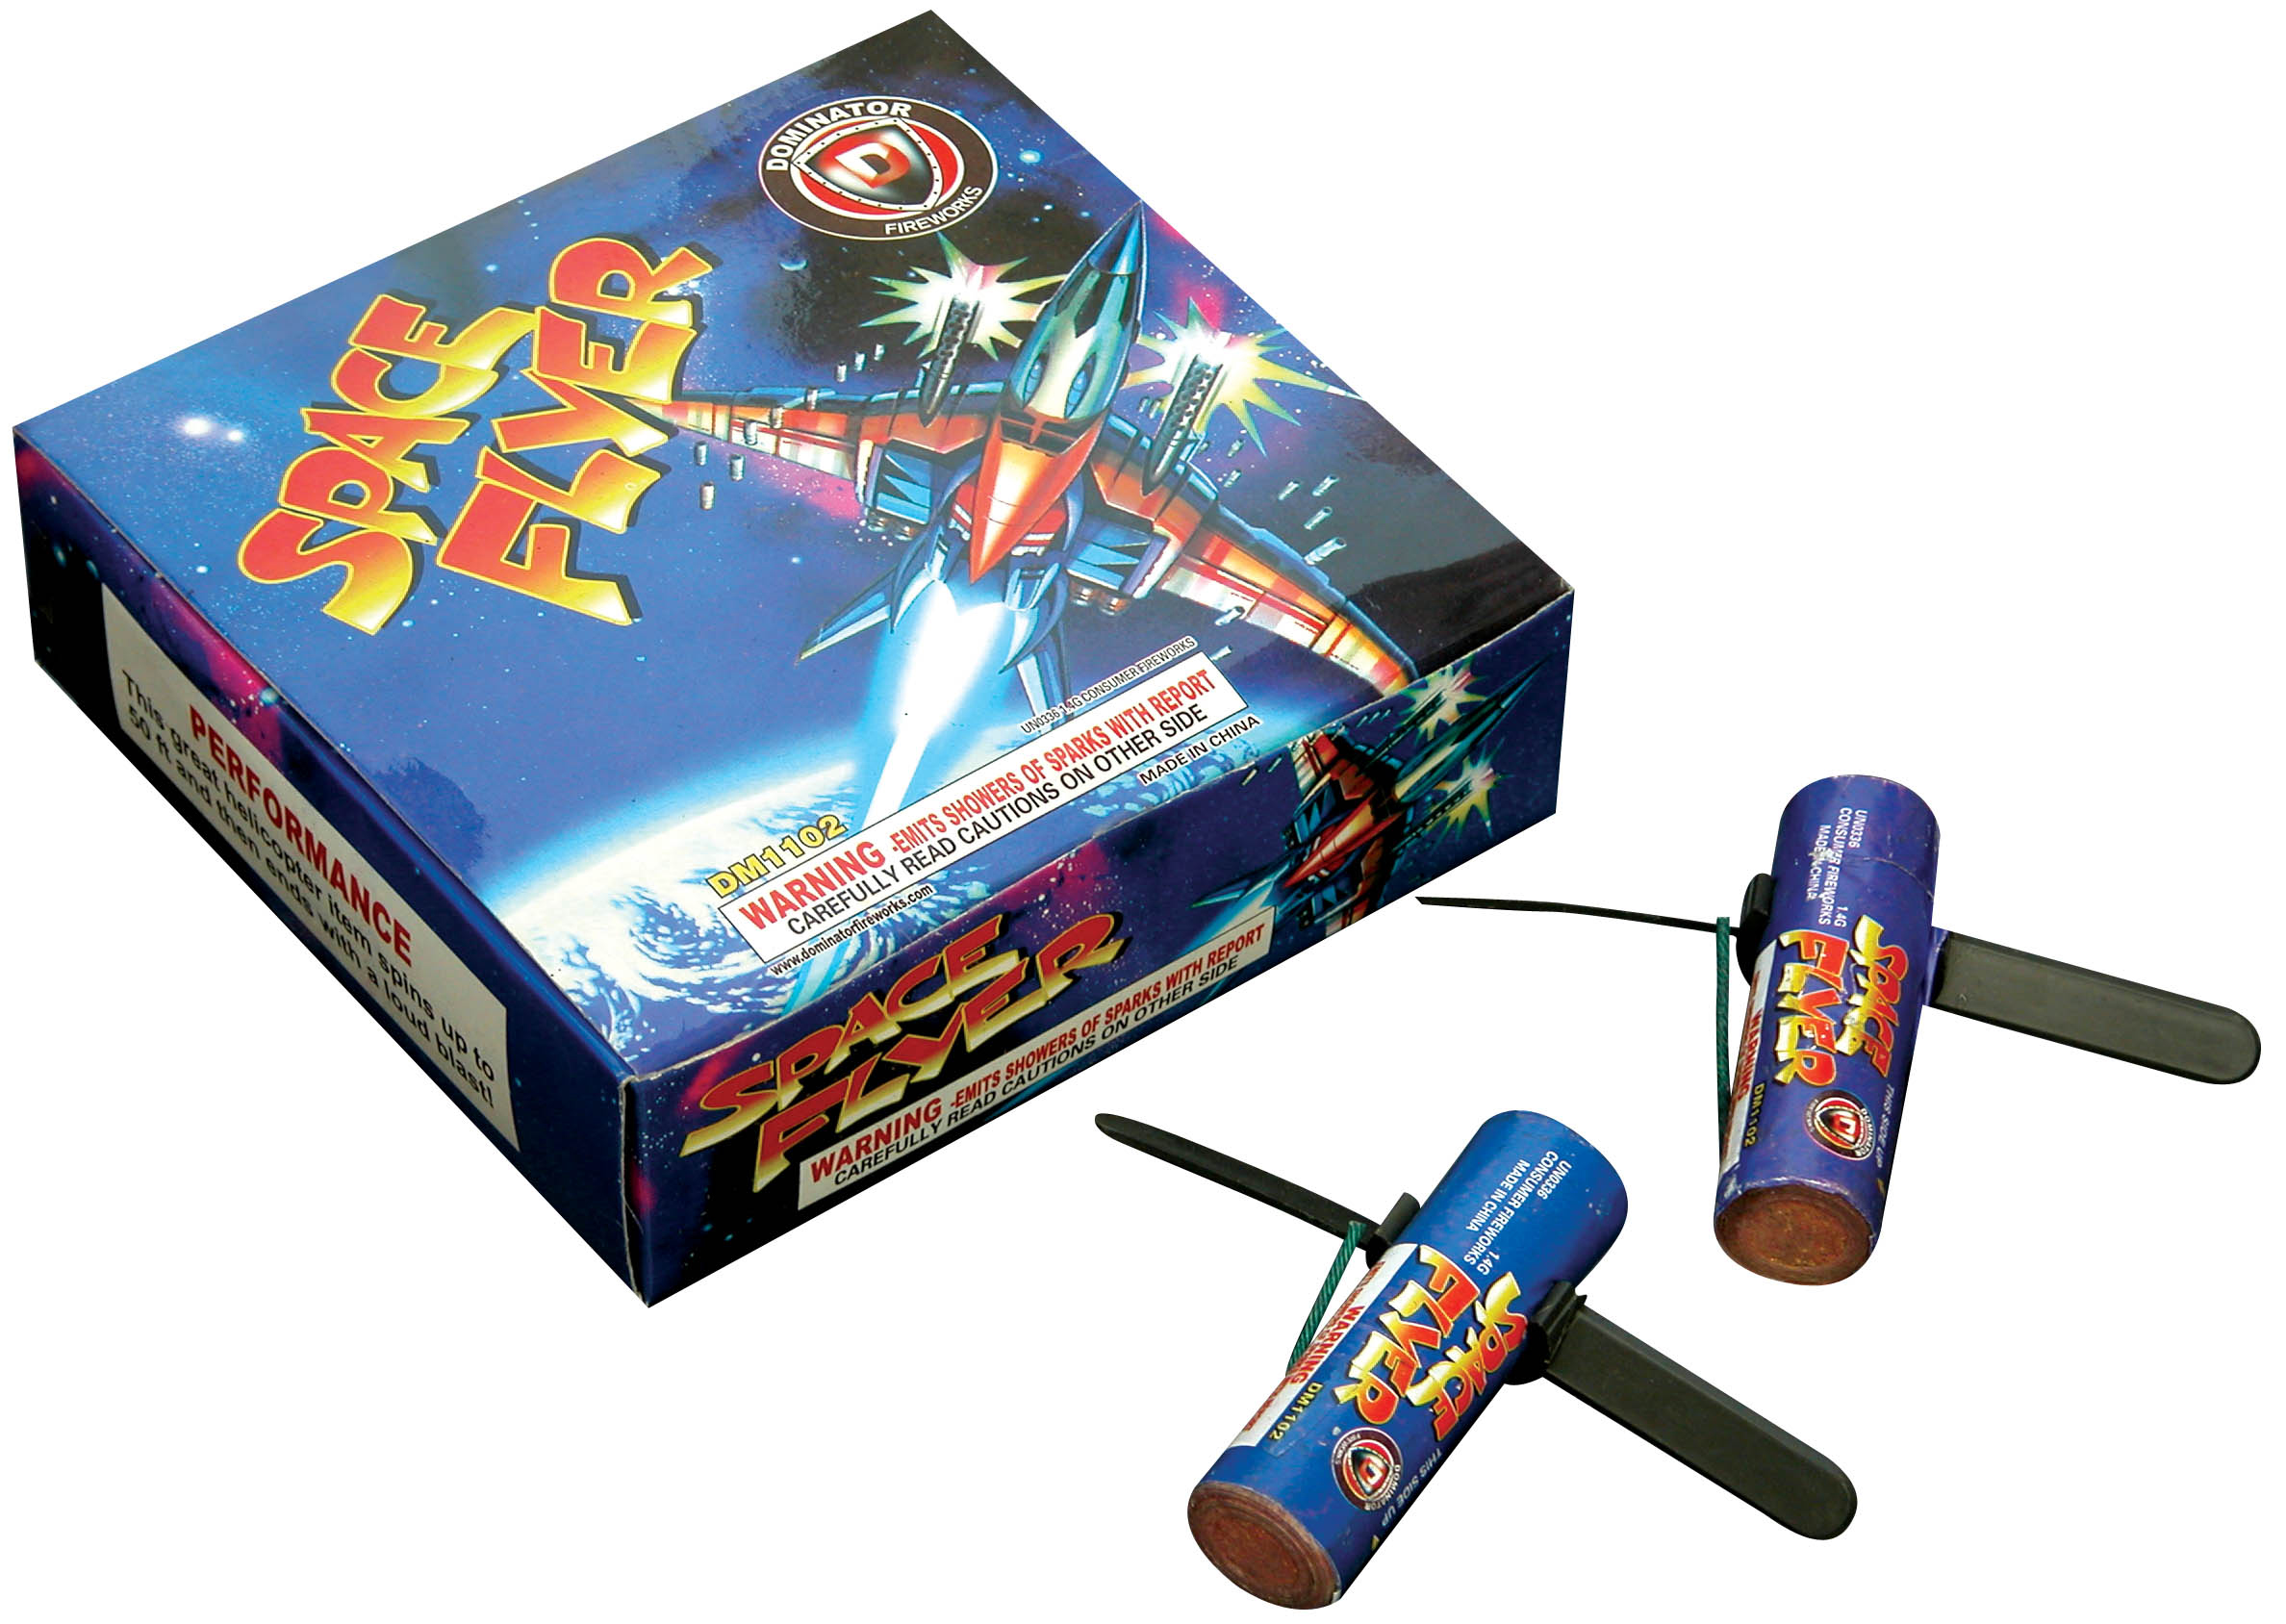 Fireworks - Miscellaneous Fireworks - SPACE FLYER/Space Fighter